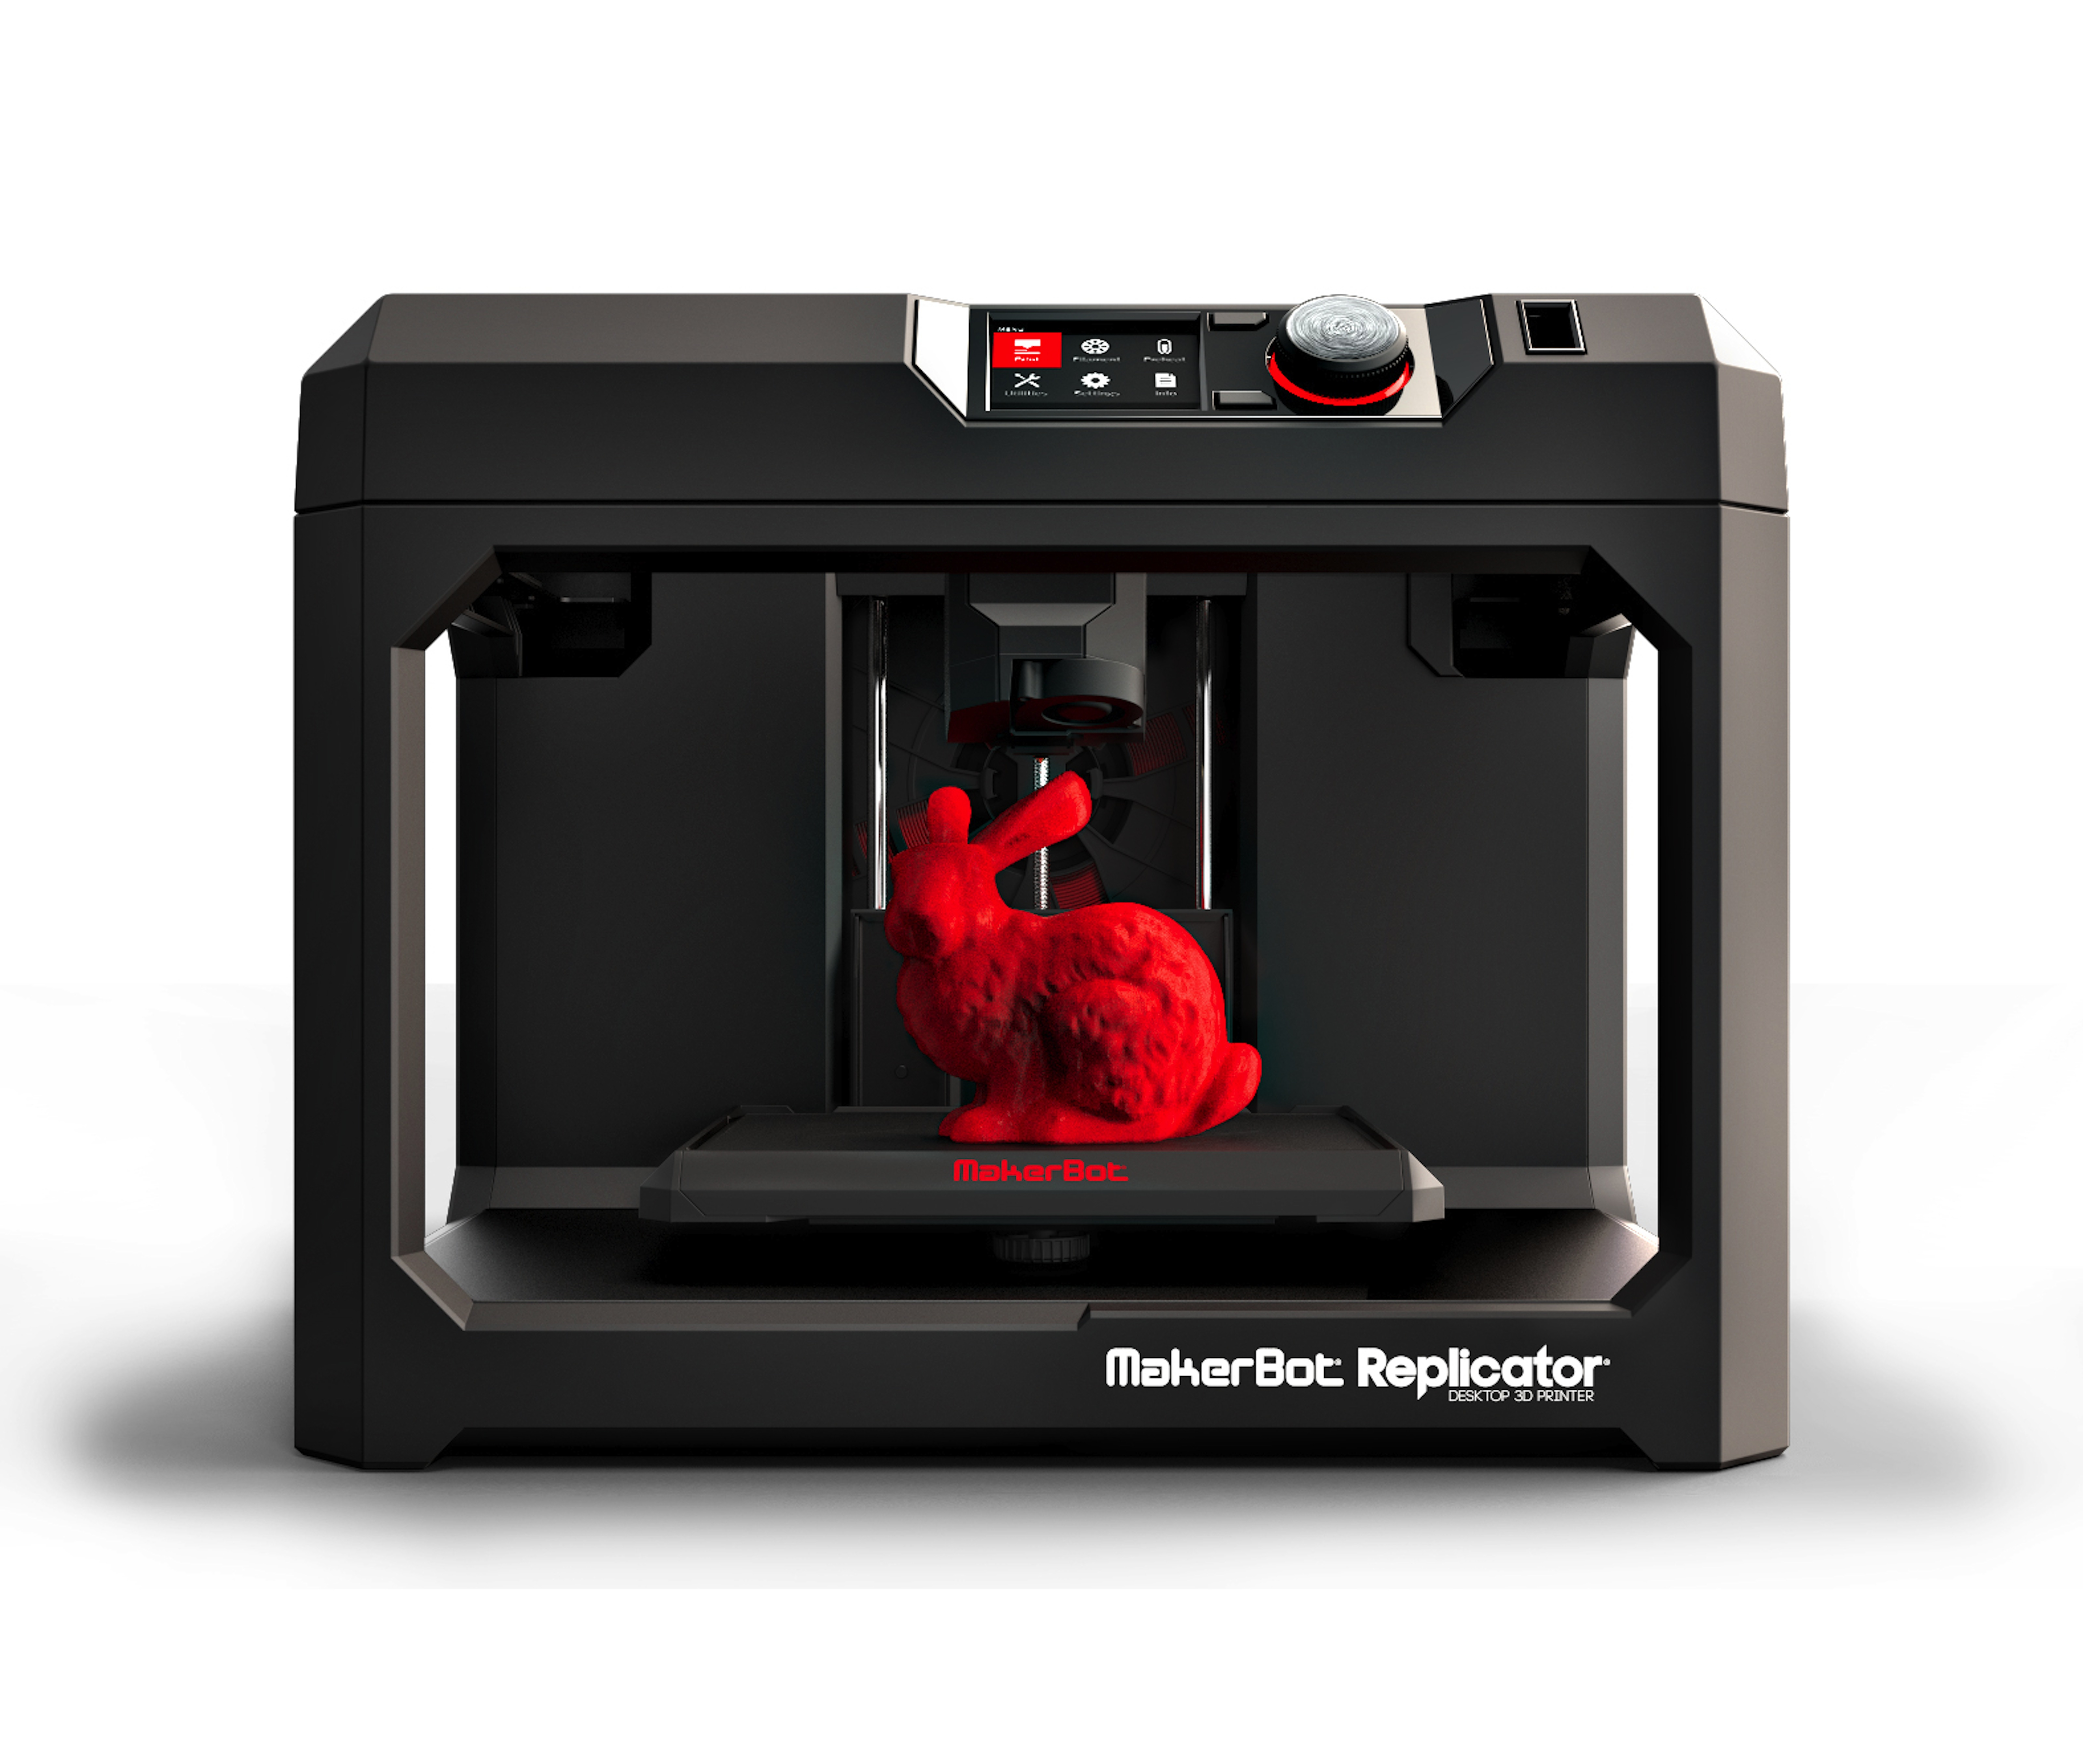 3d printer with a printed rabbit on it